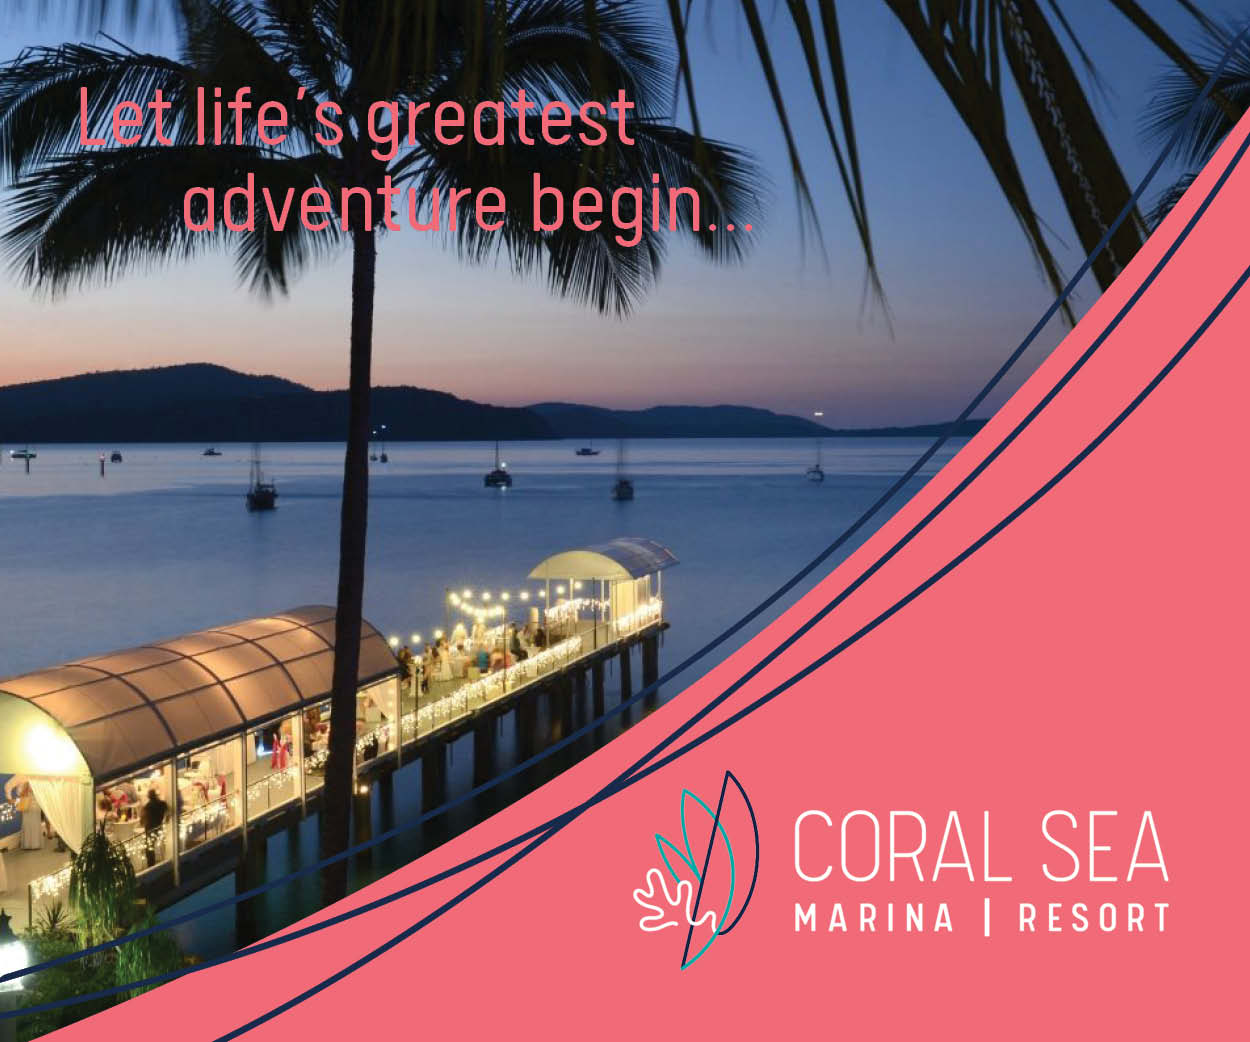 Coral Sea Marina Resort Grande Honeymoons banner